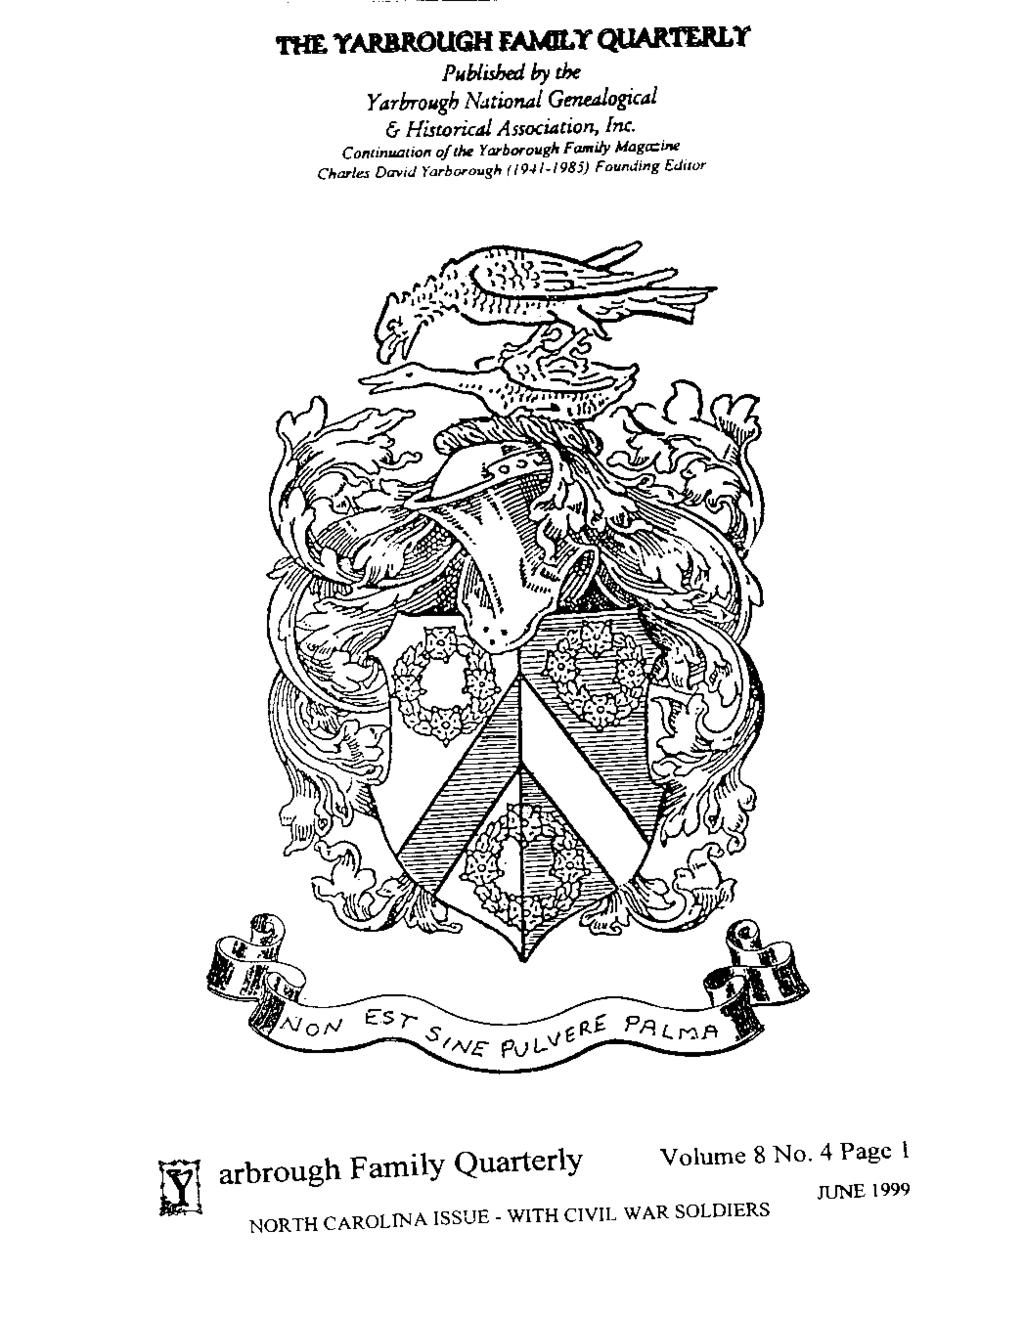 THE YARIUlOUGH FAMILY QUARTERLY Published by the Yarbrough National Genealogical & Historical Association, Inc.